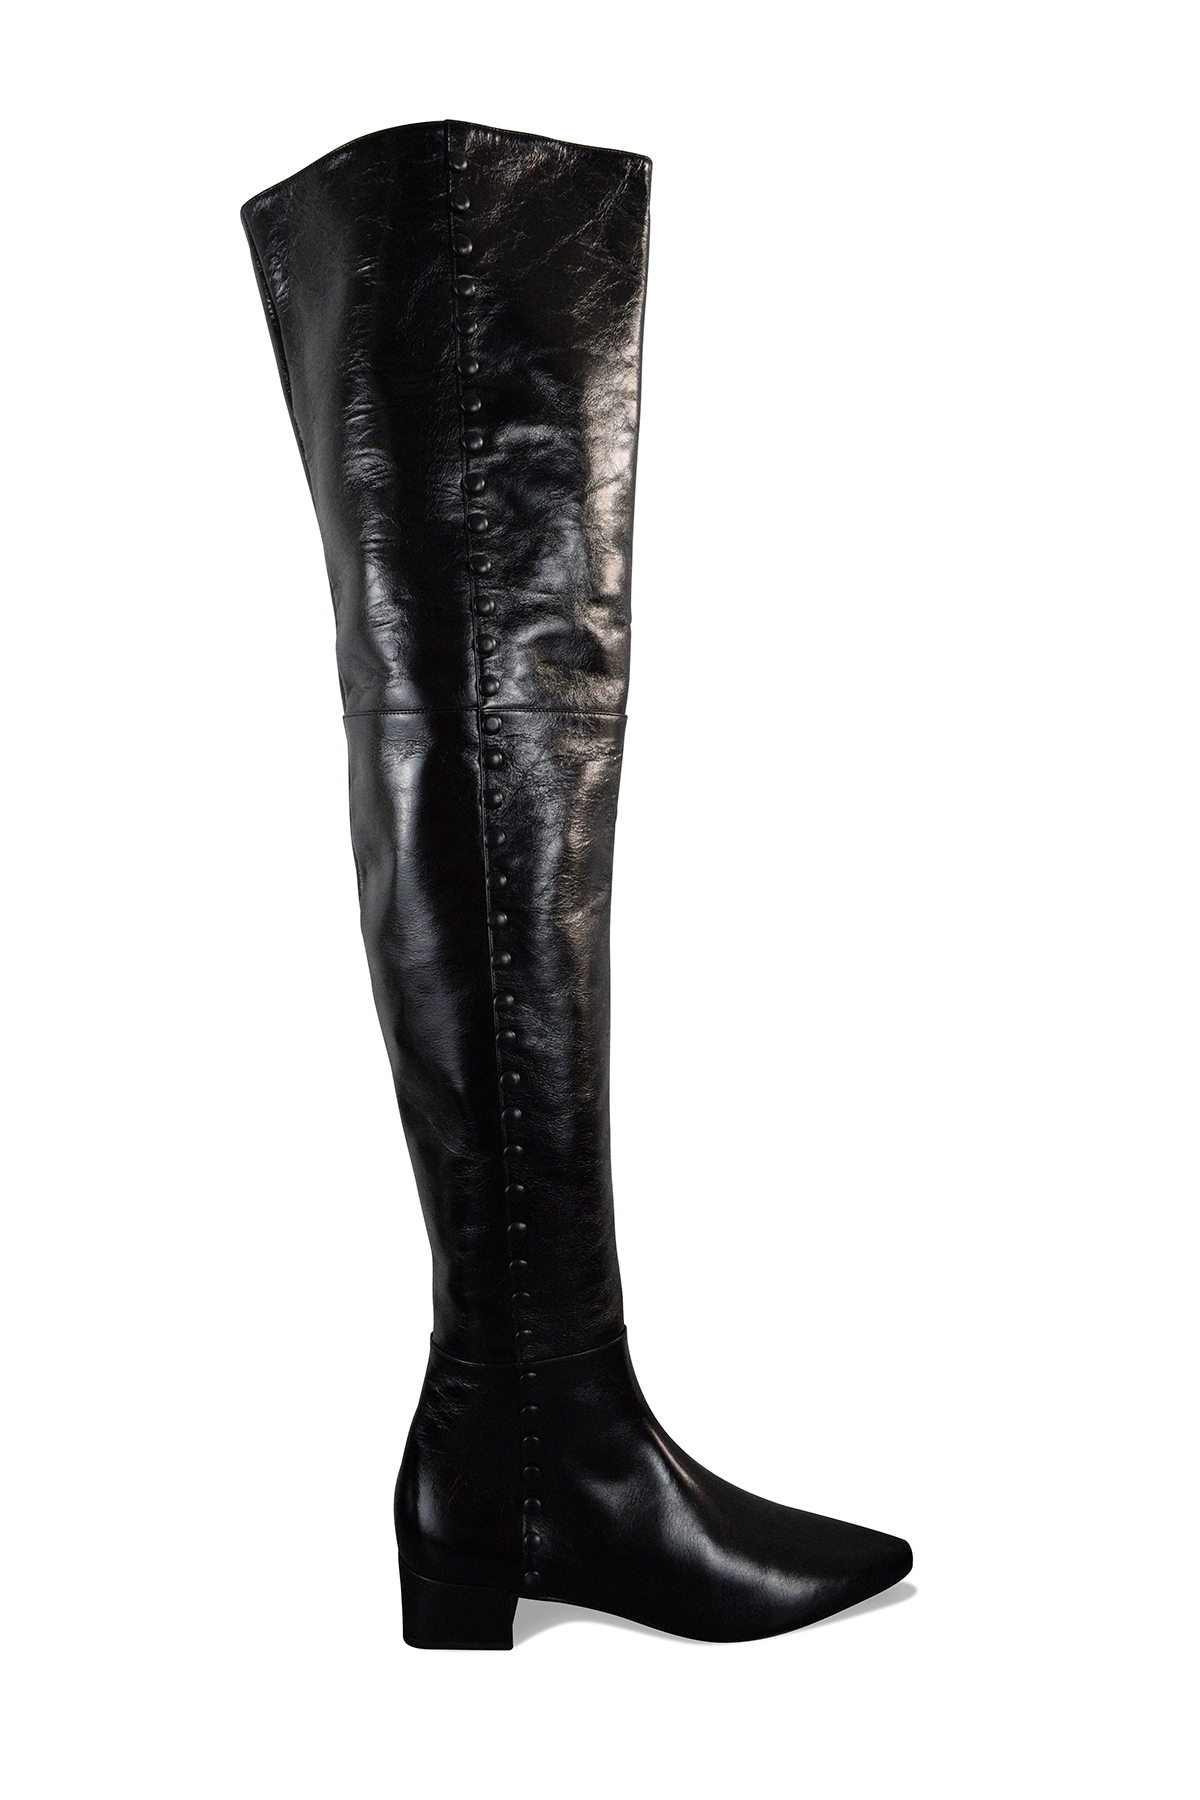 Saint Laurent boots in black shiny leather